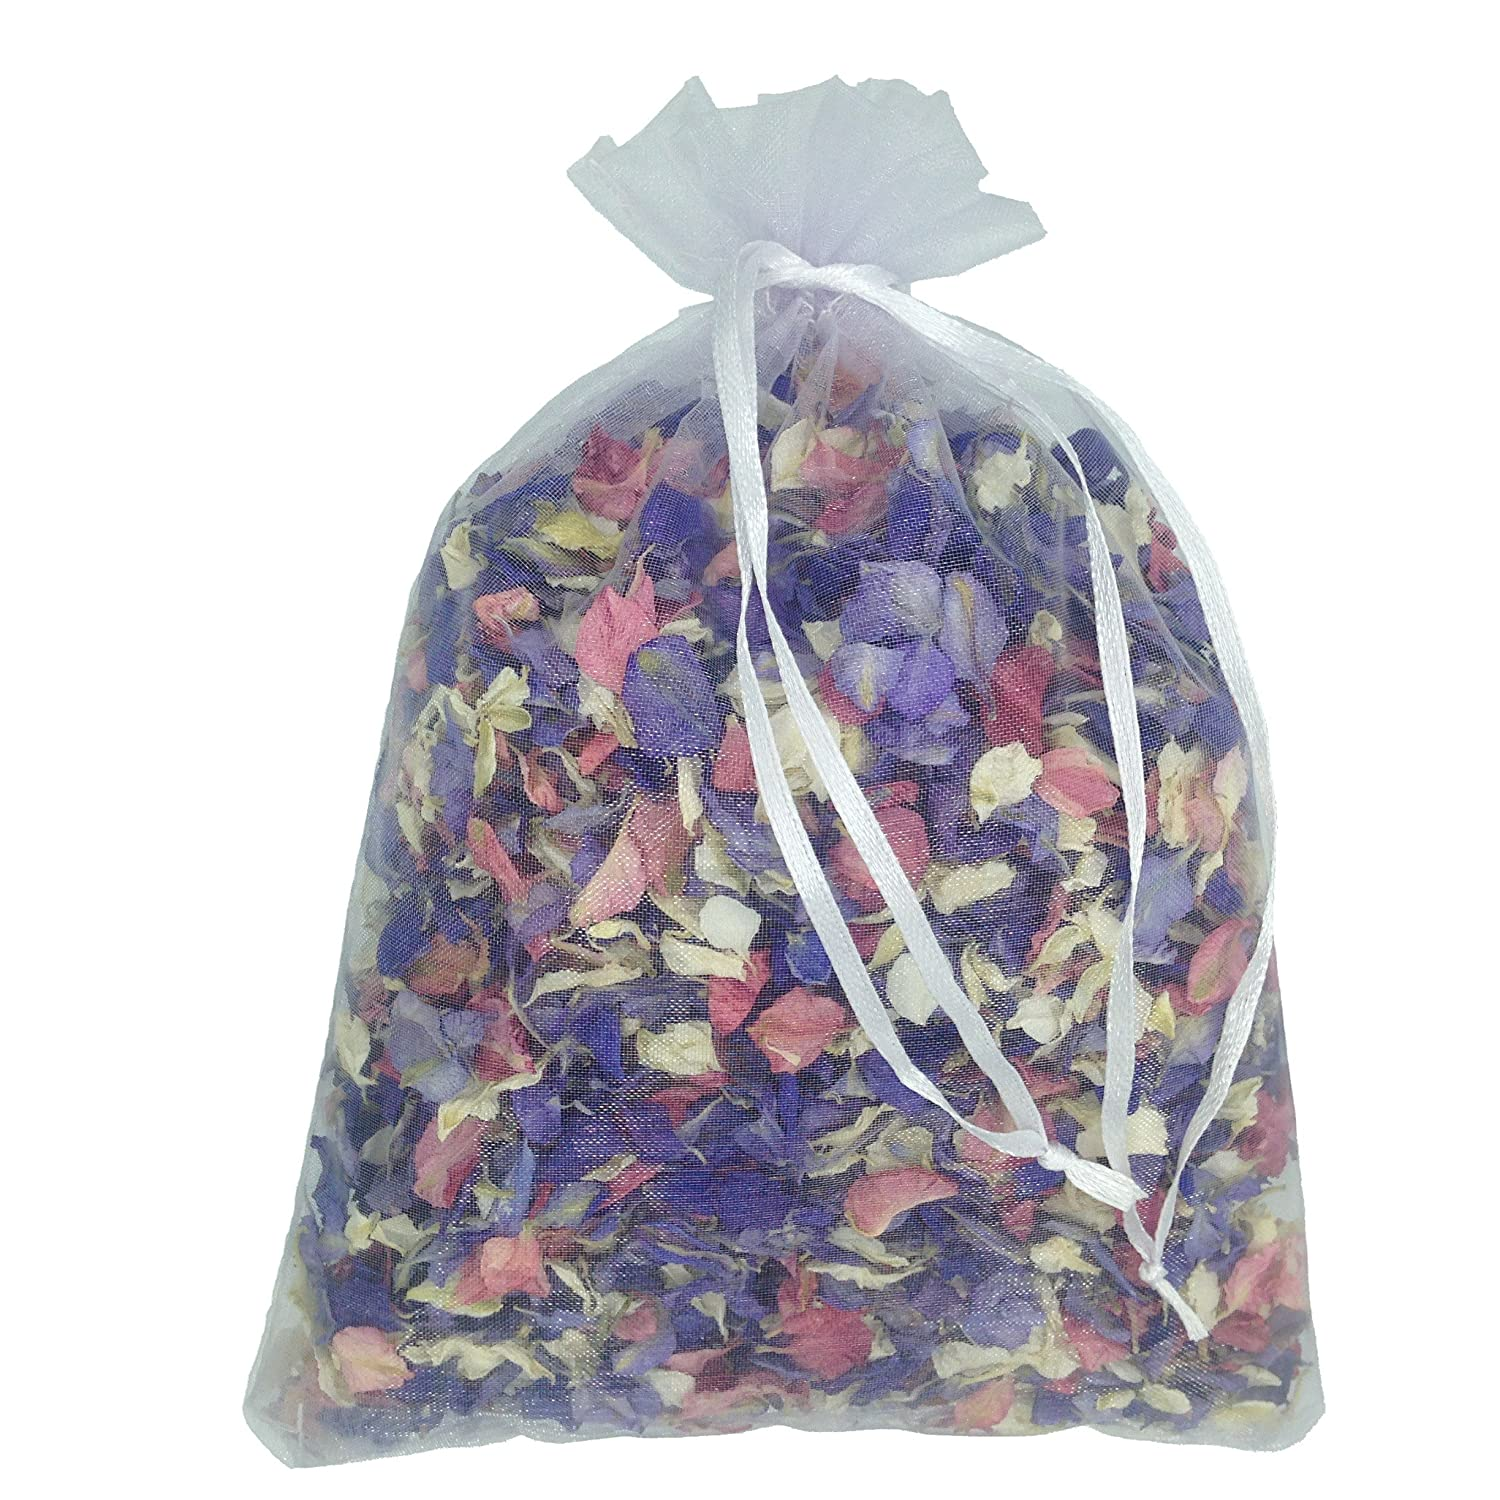 1 Litre of Mixed Colour Natural Biodegradable Delphinium Petals with a White Organza Bag - Wedding Throwing Confetti Truly Madly Deeply Ltd TMD-ADDP-MIX-1L